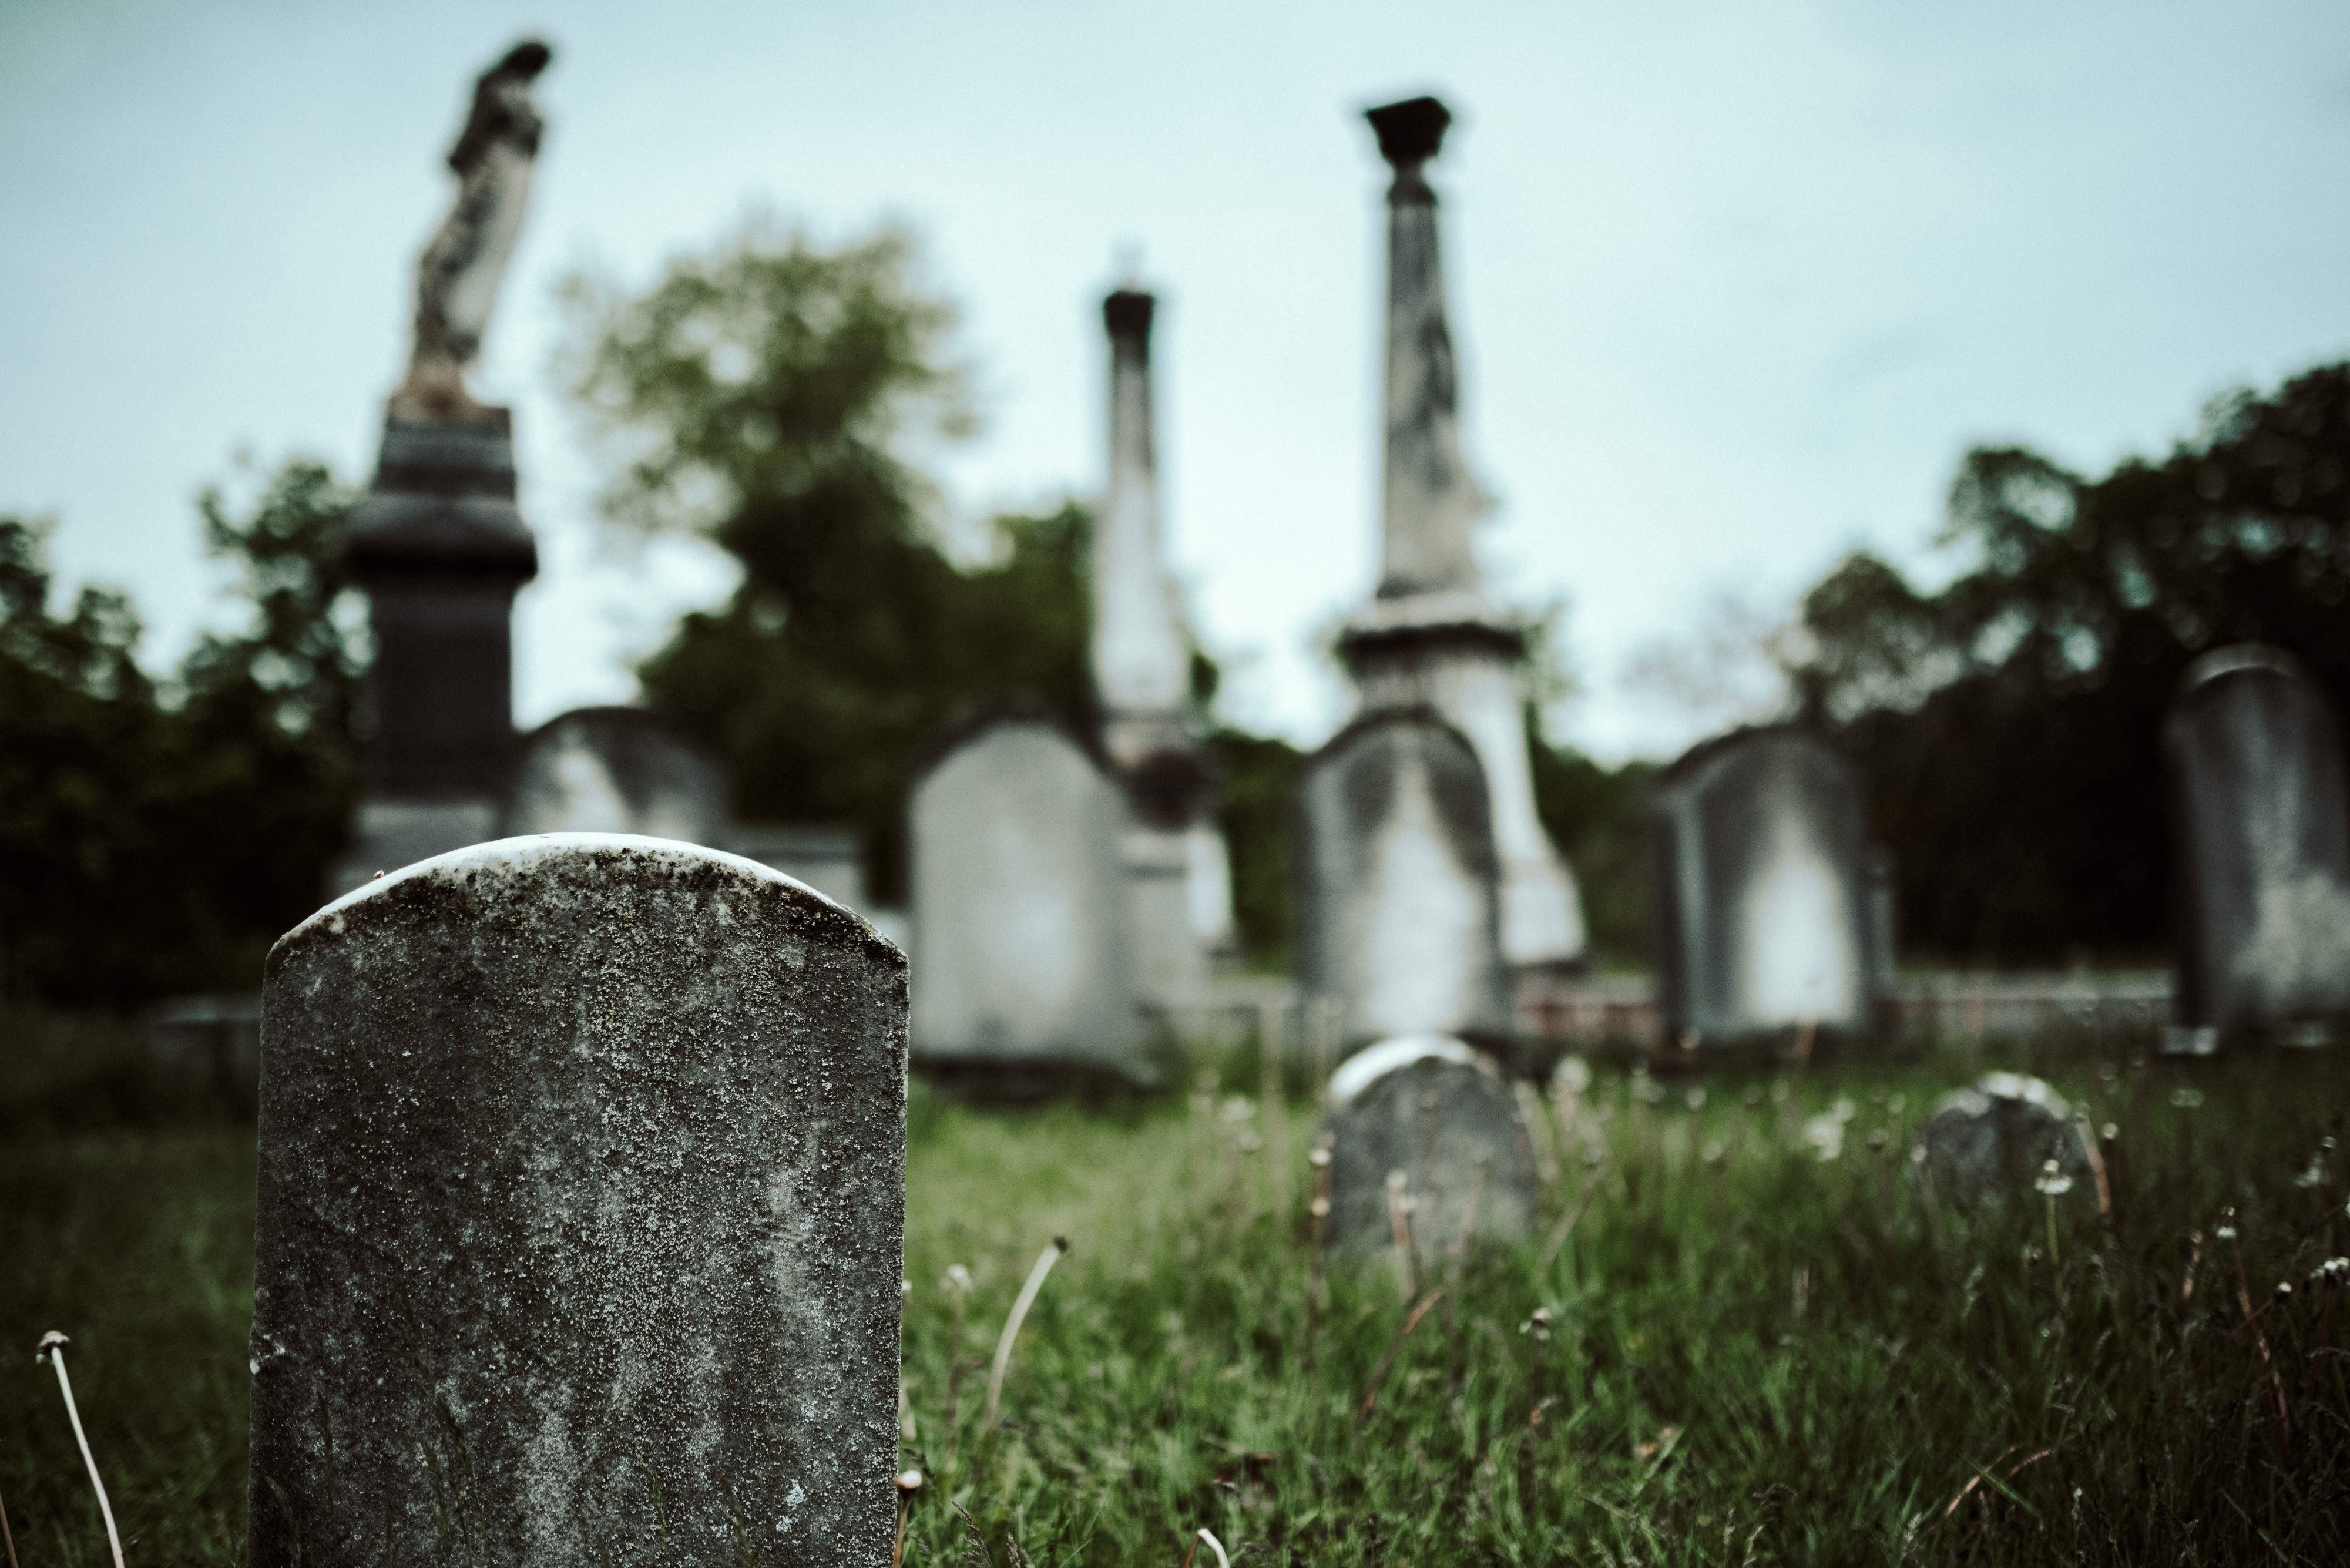 A cemetery. It's not that spooky, really.